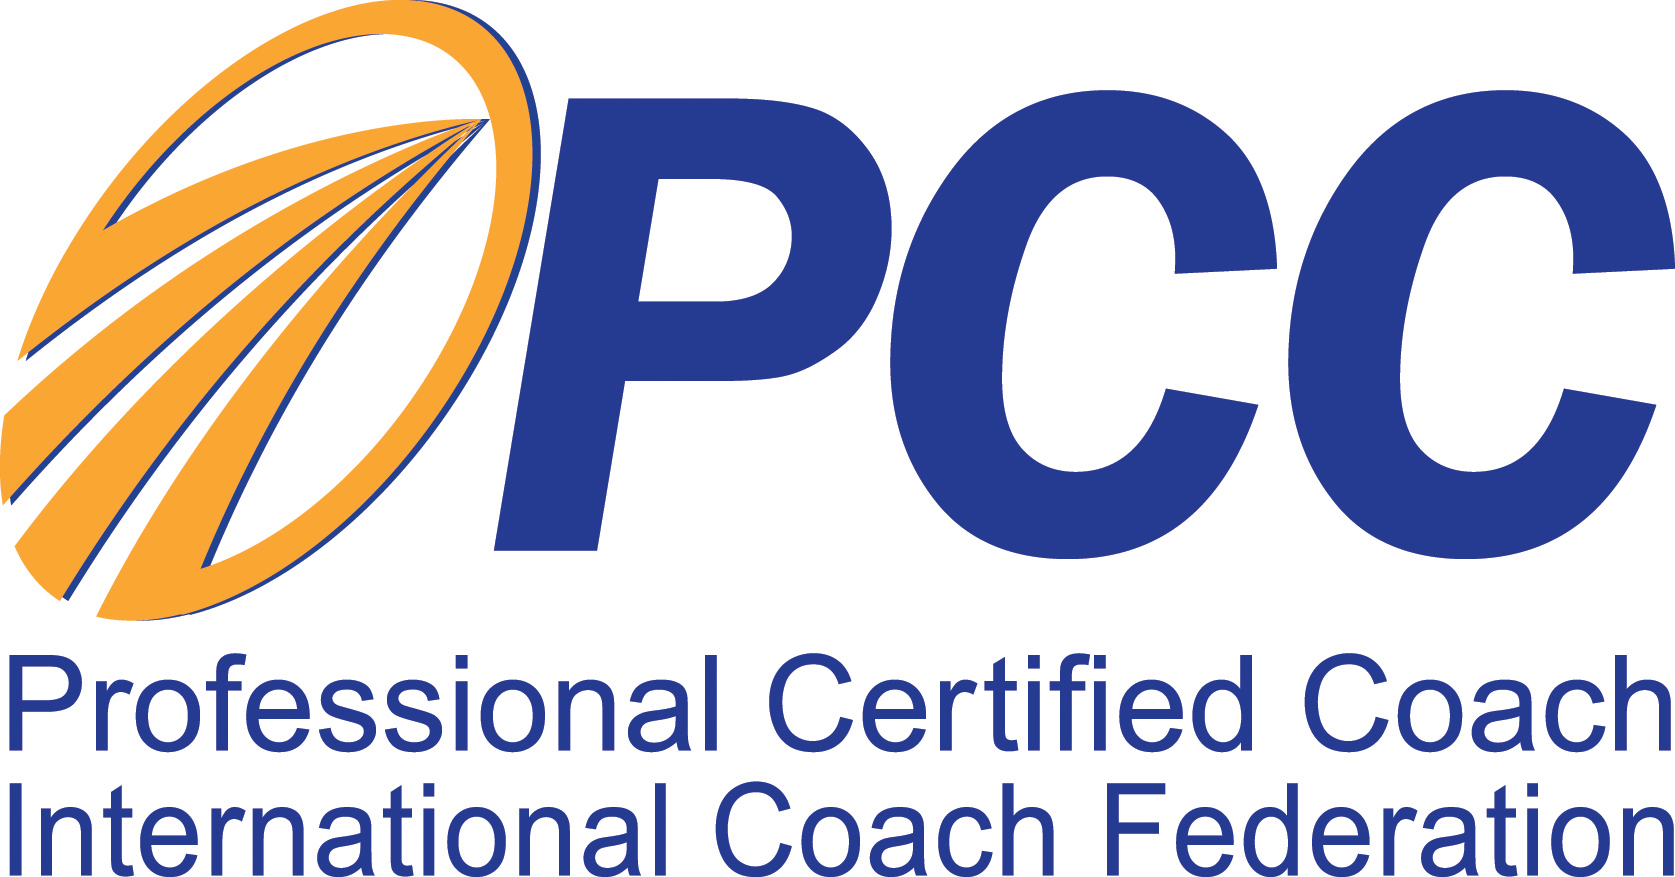 Personal Certified Coach